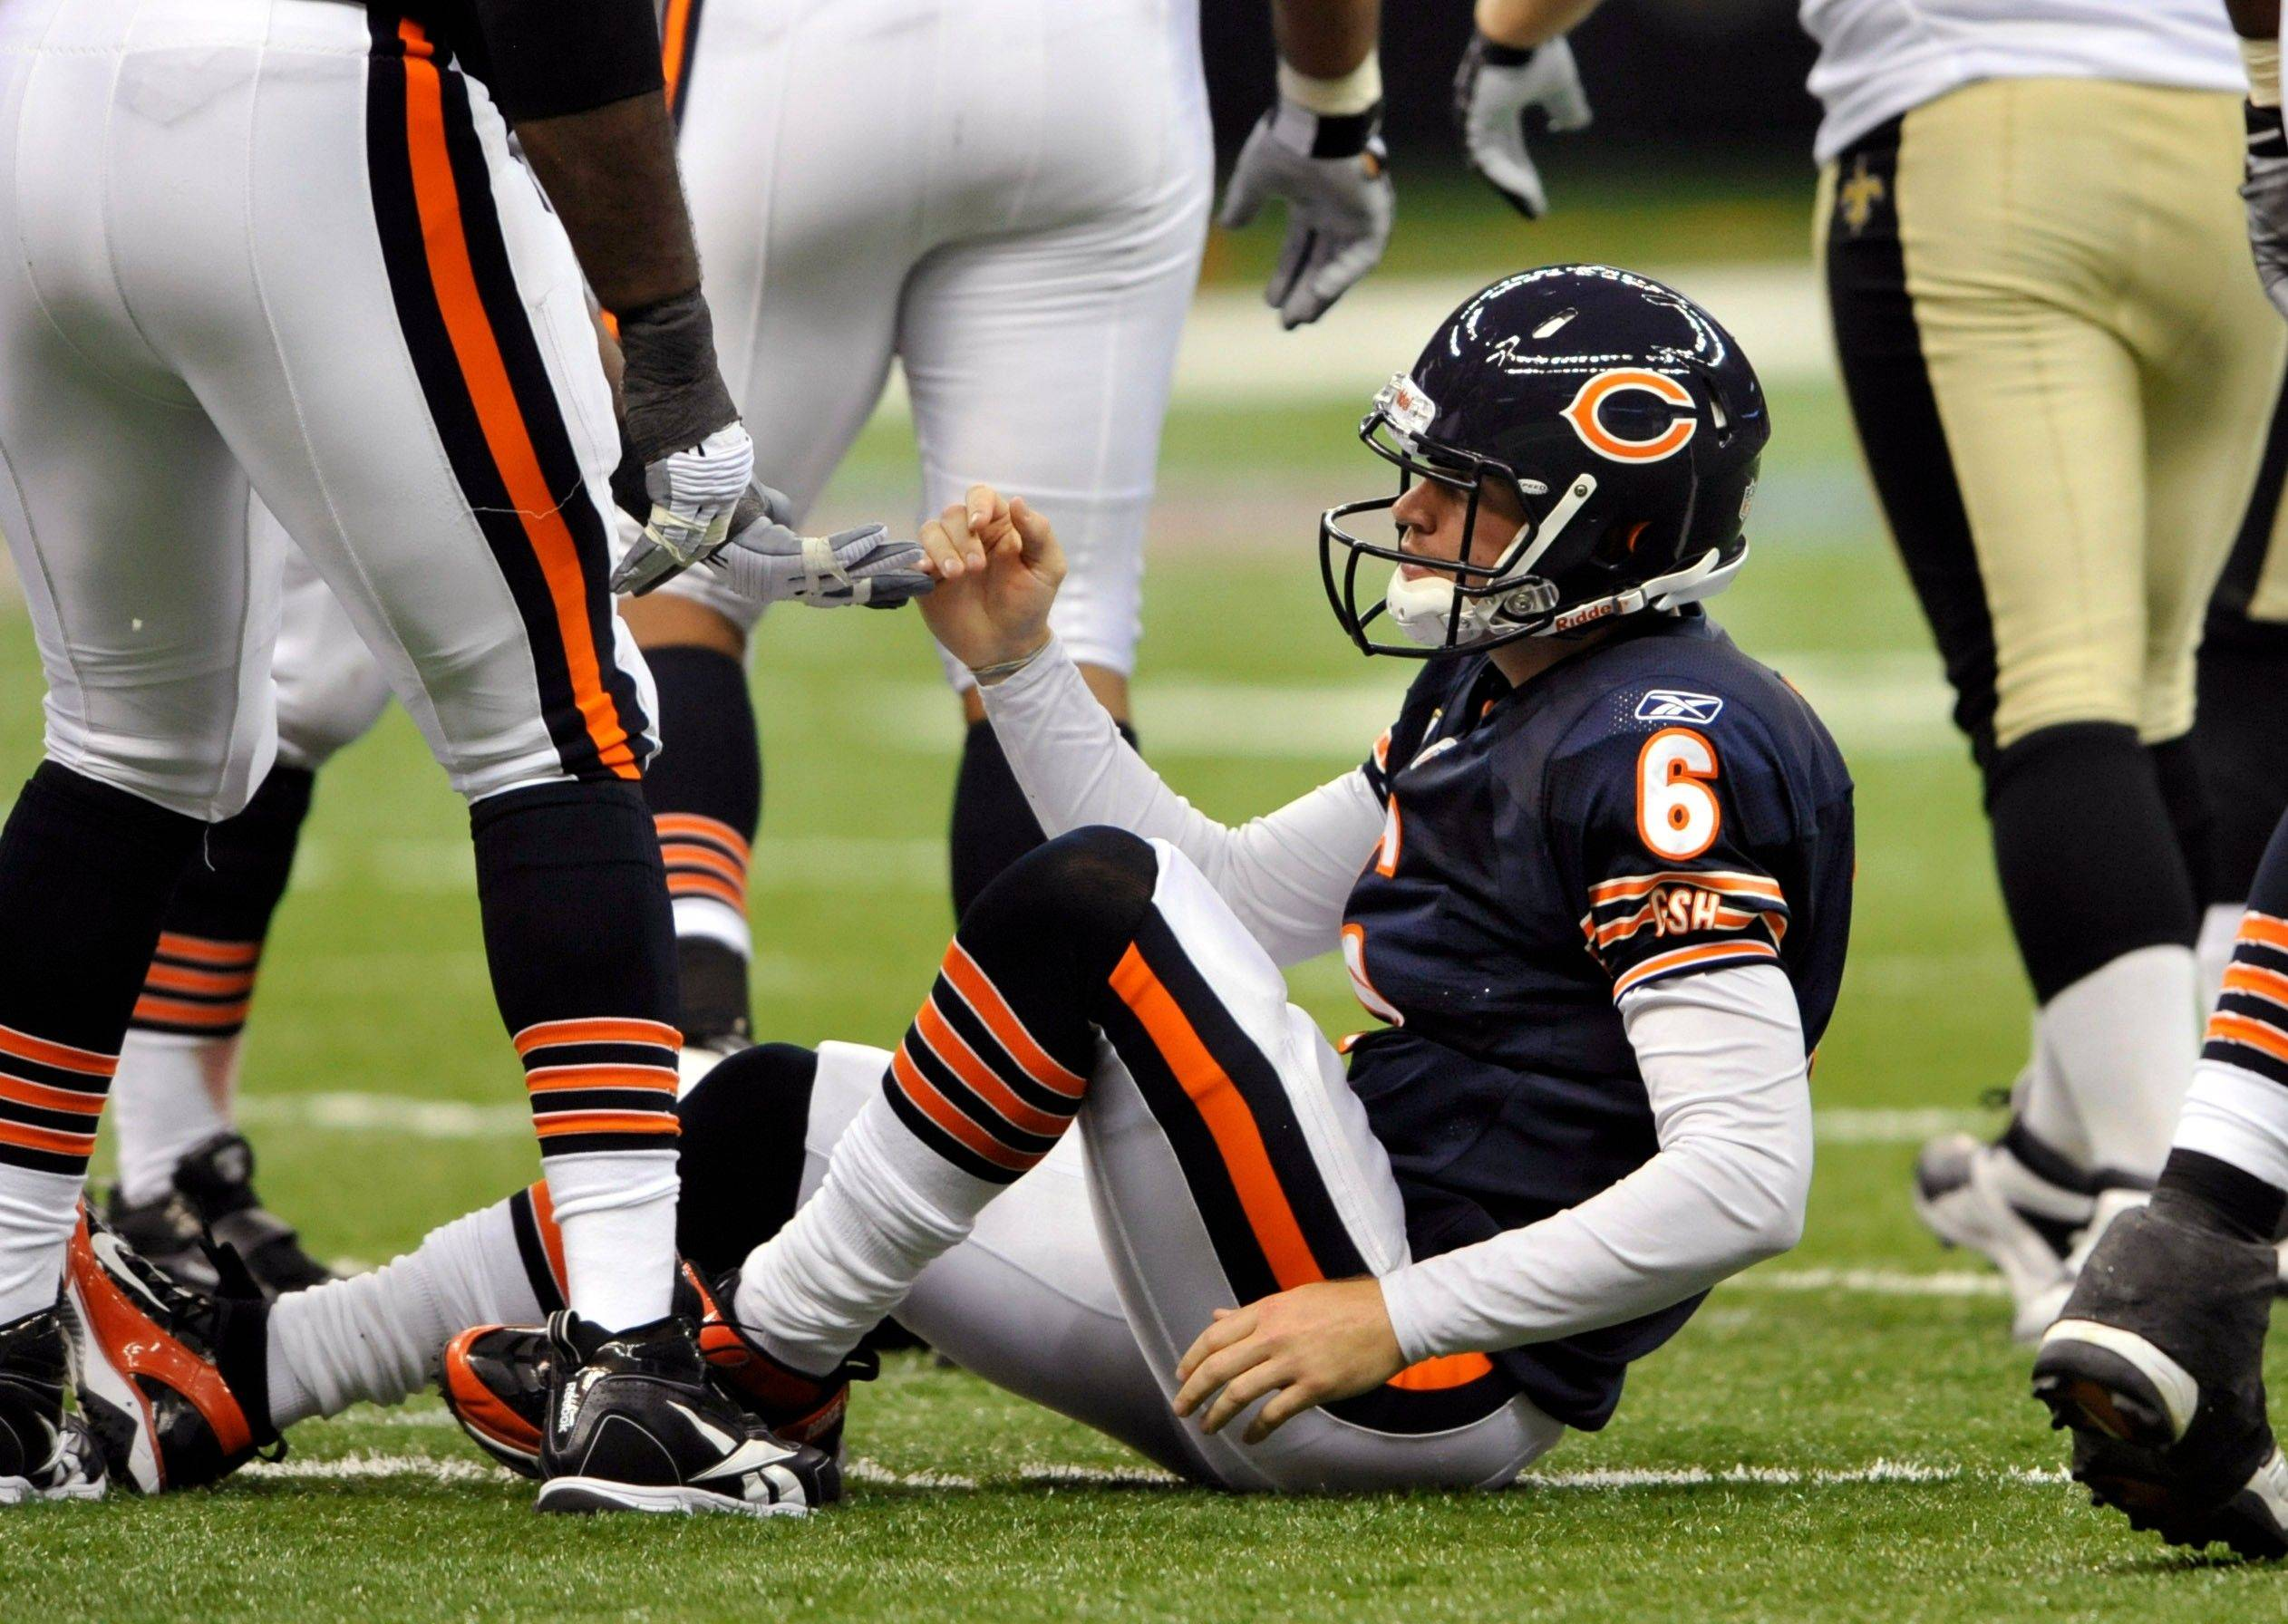 Chicago Bears quarterback Jay Cutler is helped up after being sacked during the fourth quarter of an NFL football game against the New Orleans Saints at the Louisiana Superdome in New Orleans, Sunday, Sept. 18, 2011. The Saints won 30-13.